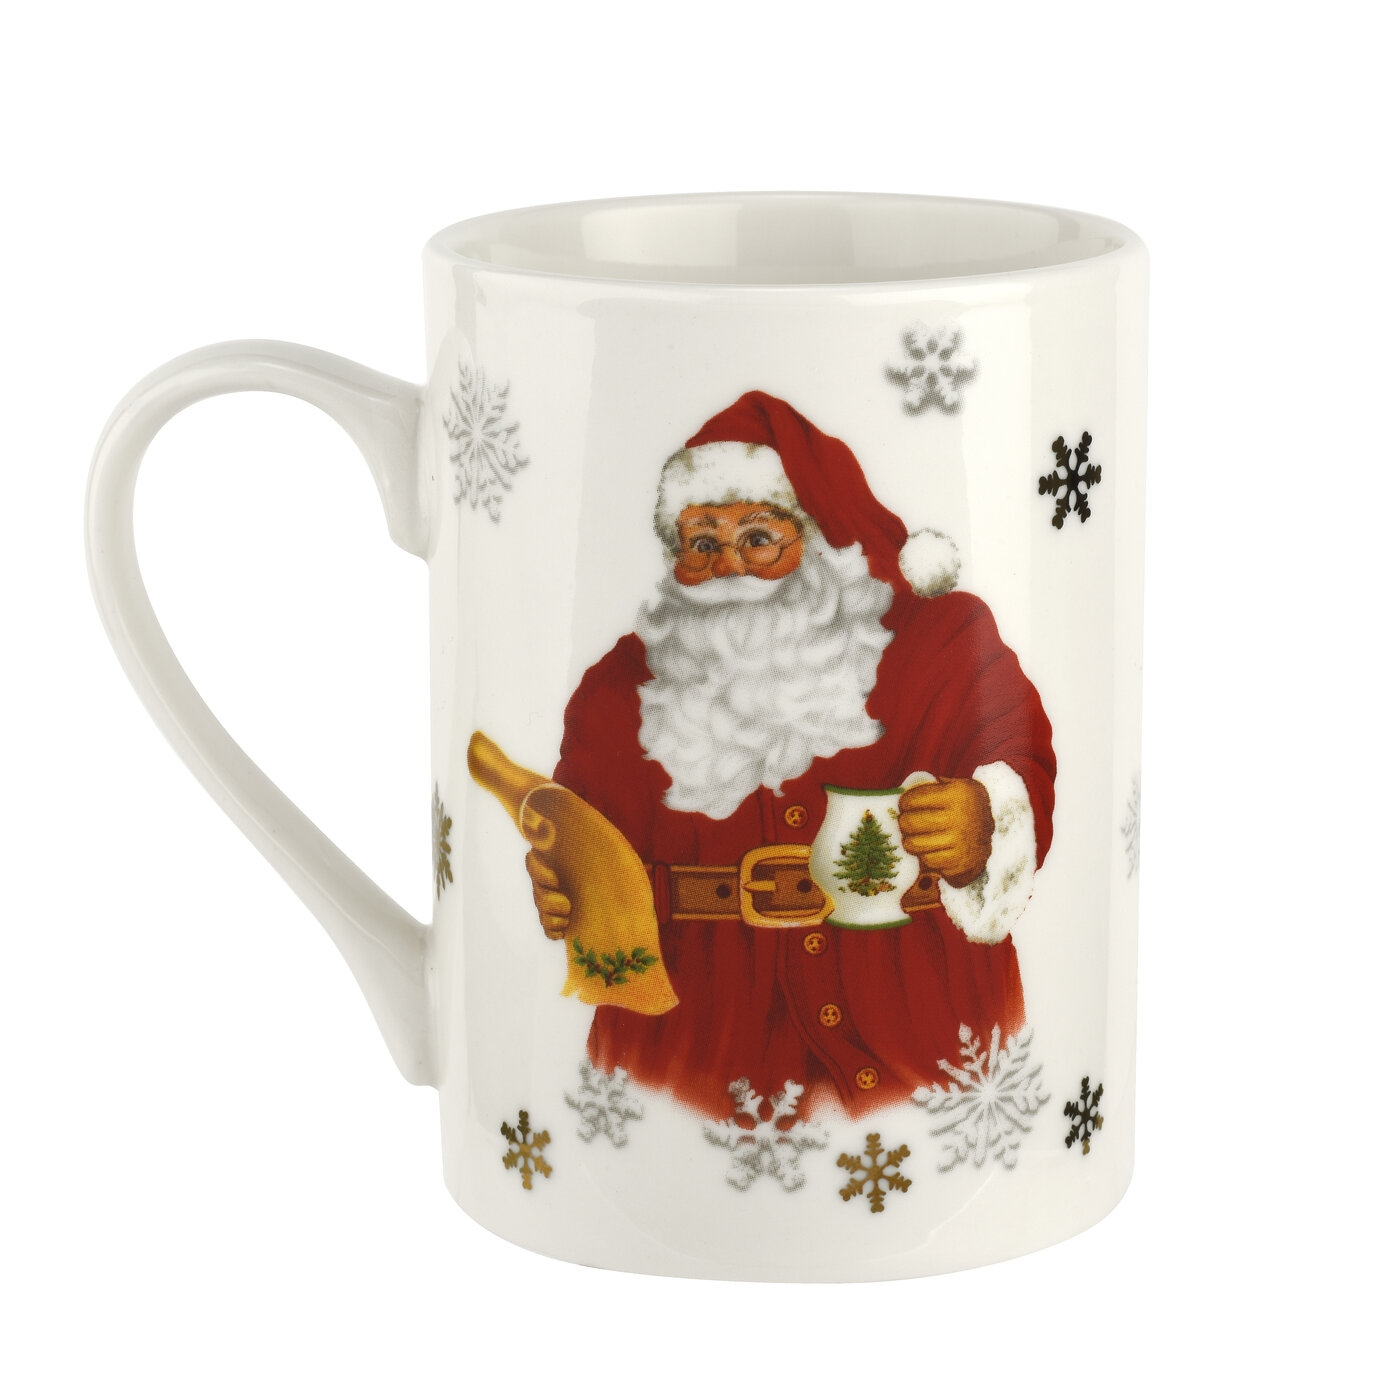 Pimpernel Christmas Tree 3 Piece Mug & Tray Set image number 2